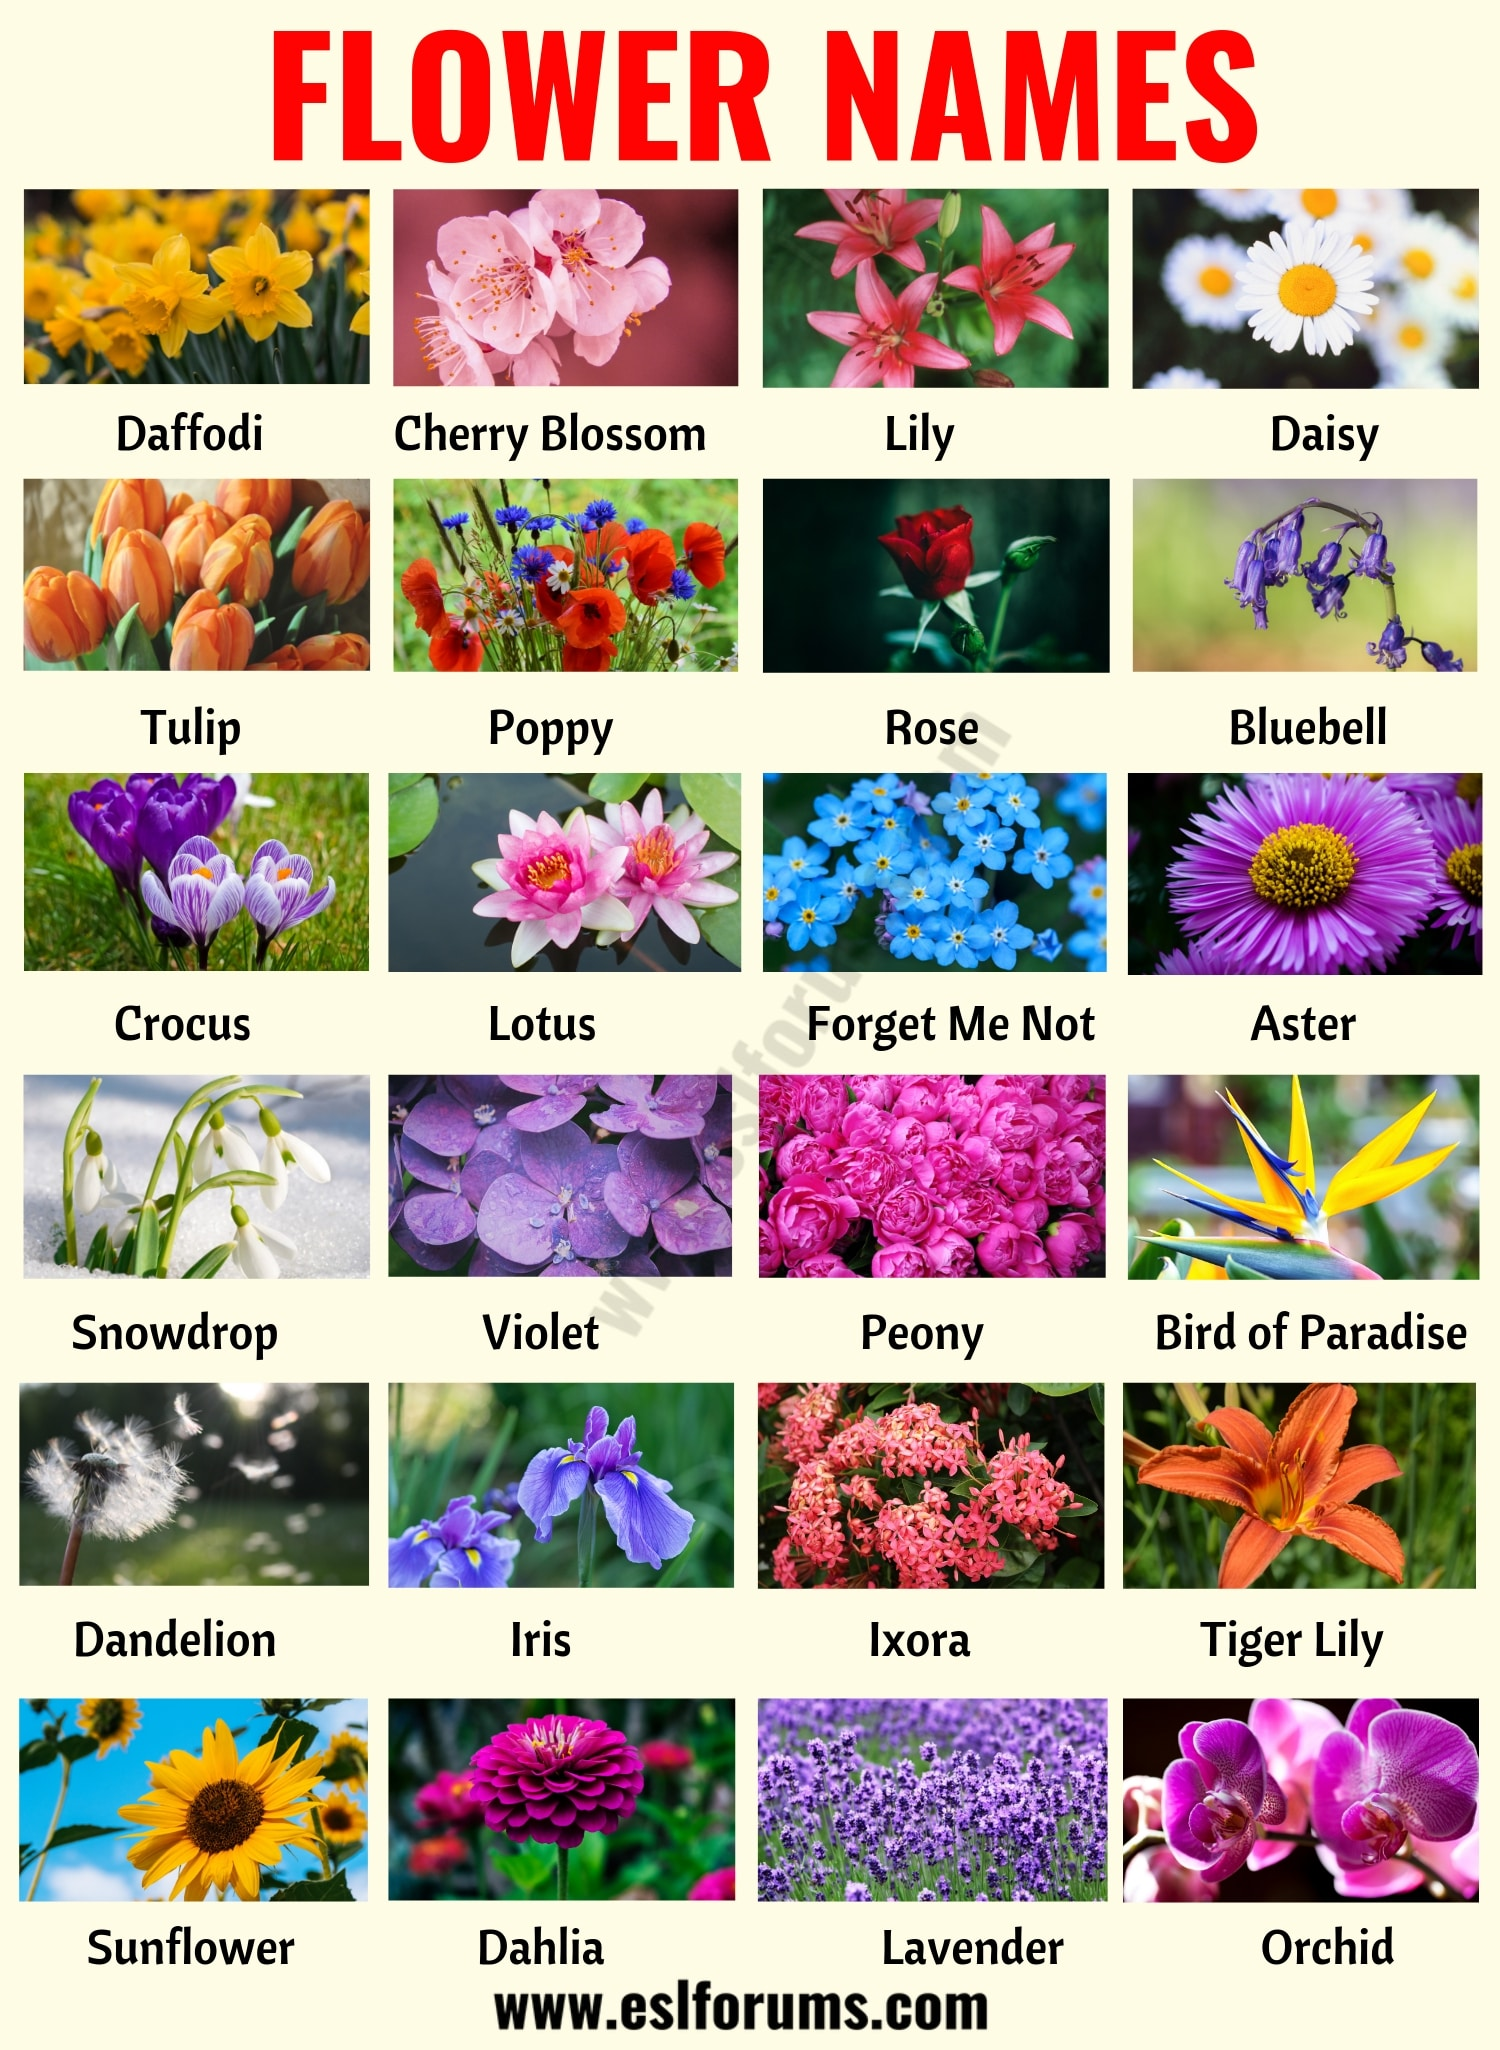 Flower Names List Of 25 Popular Names Of Flowers With The Pictures Esl Forums Flower Names List Of Flowers Flowers Name List